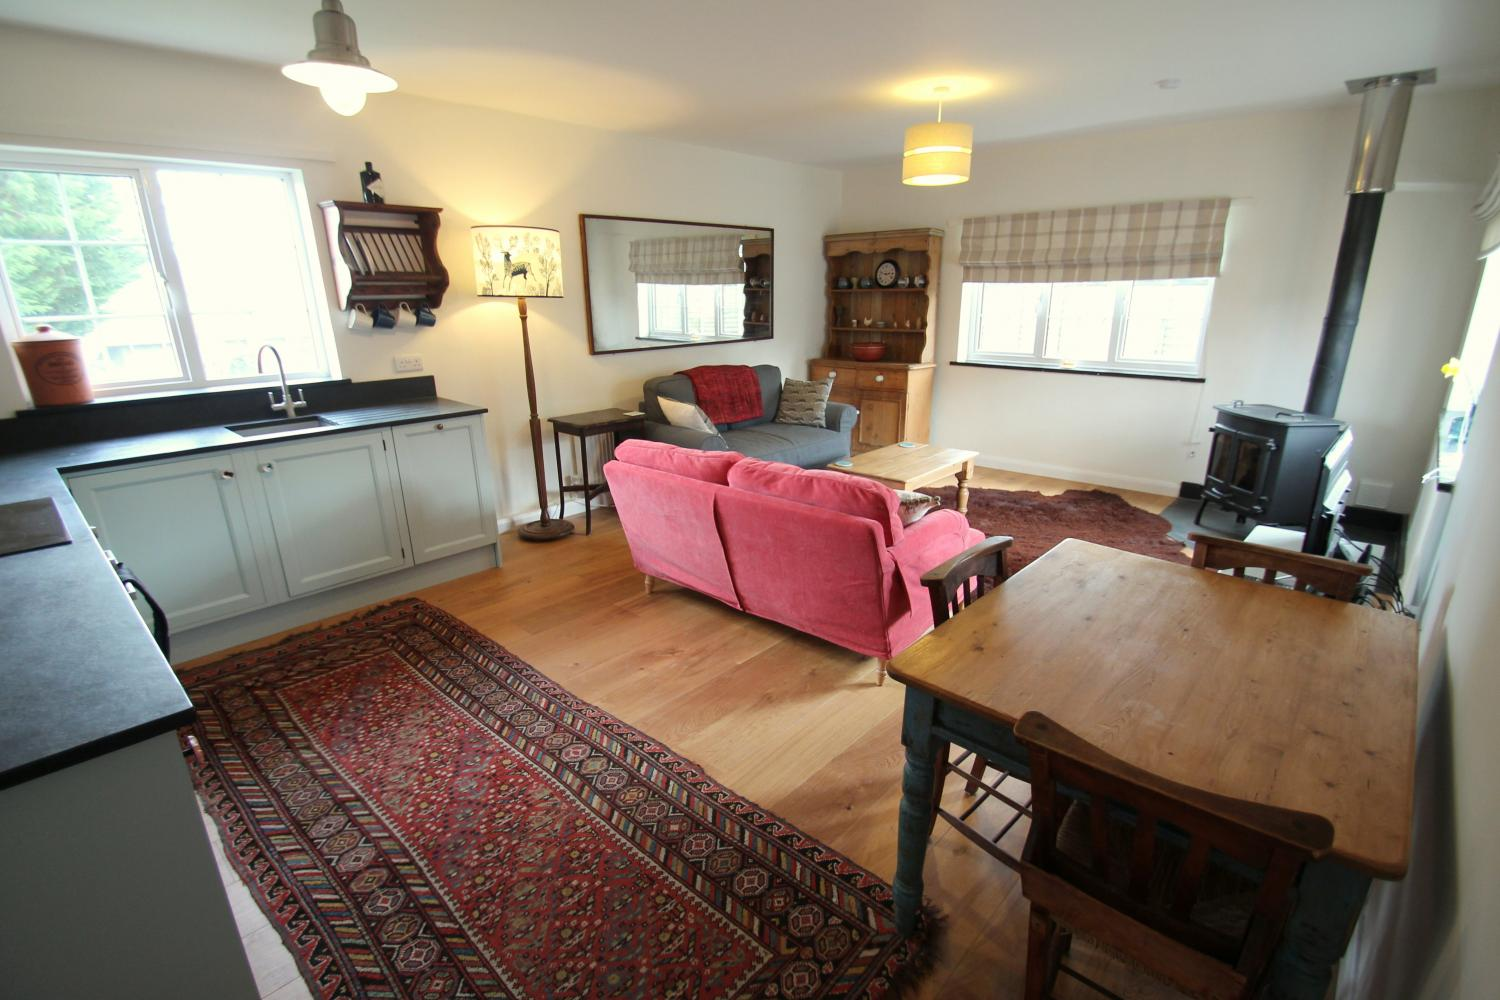 Sitting room / kitchen with large wood burner.